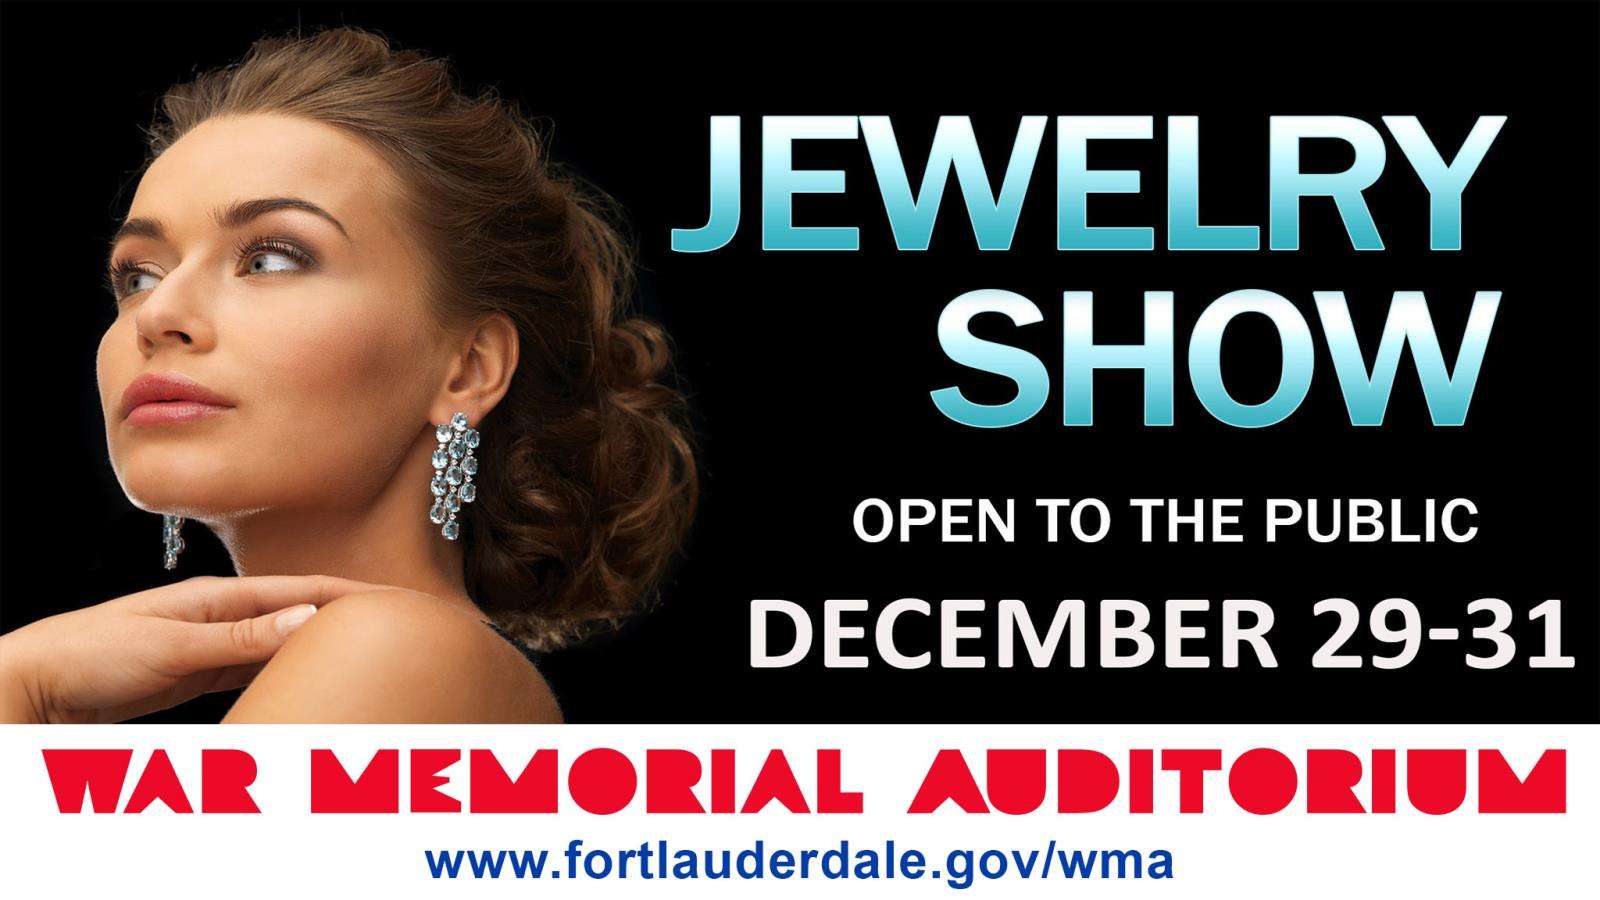 GemShowDec2931_Monitor